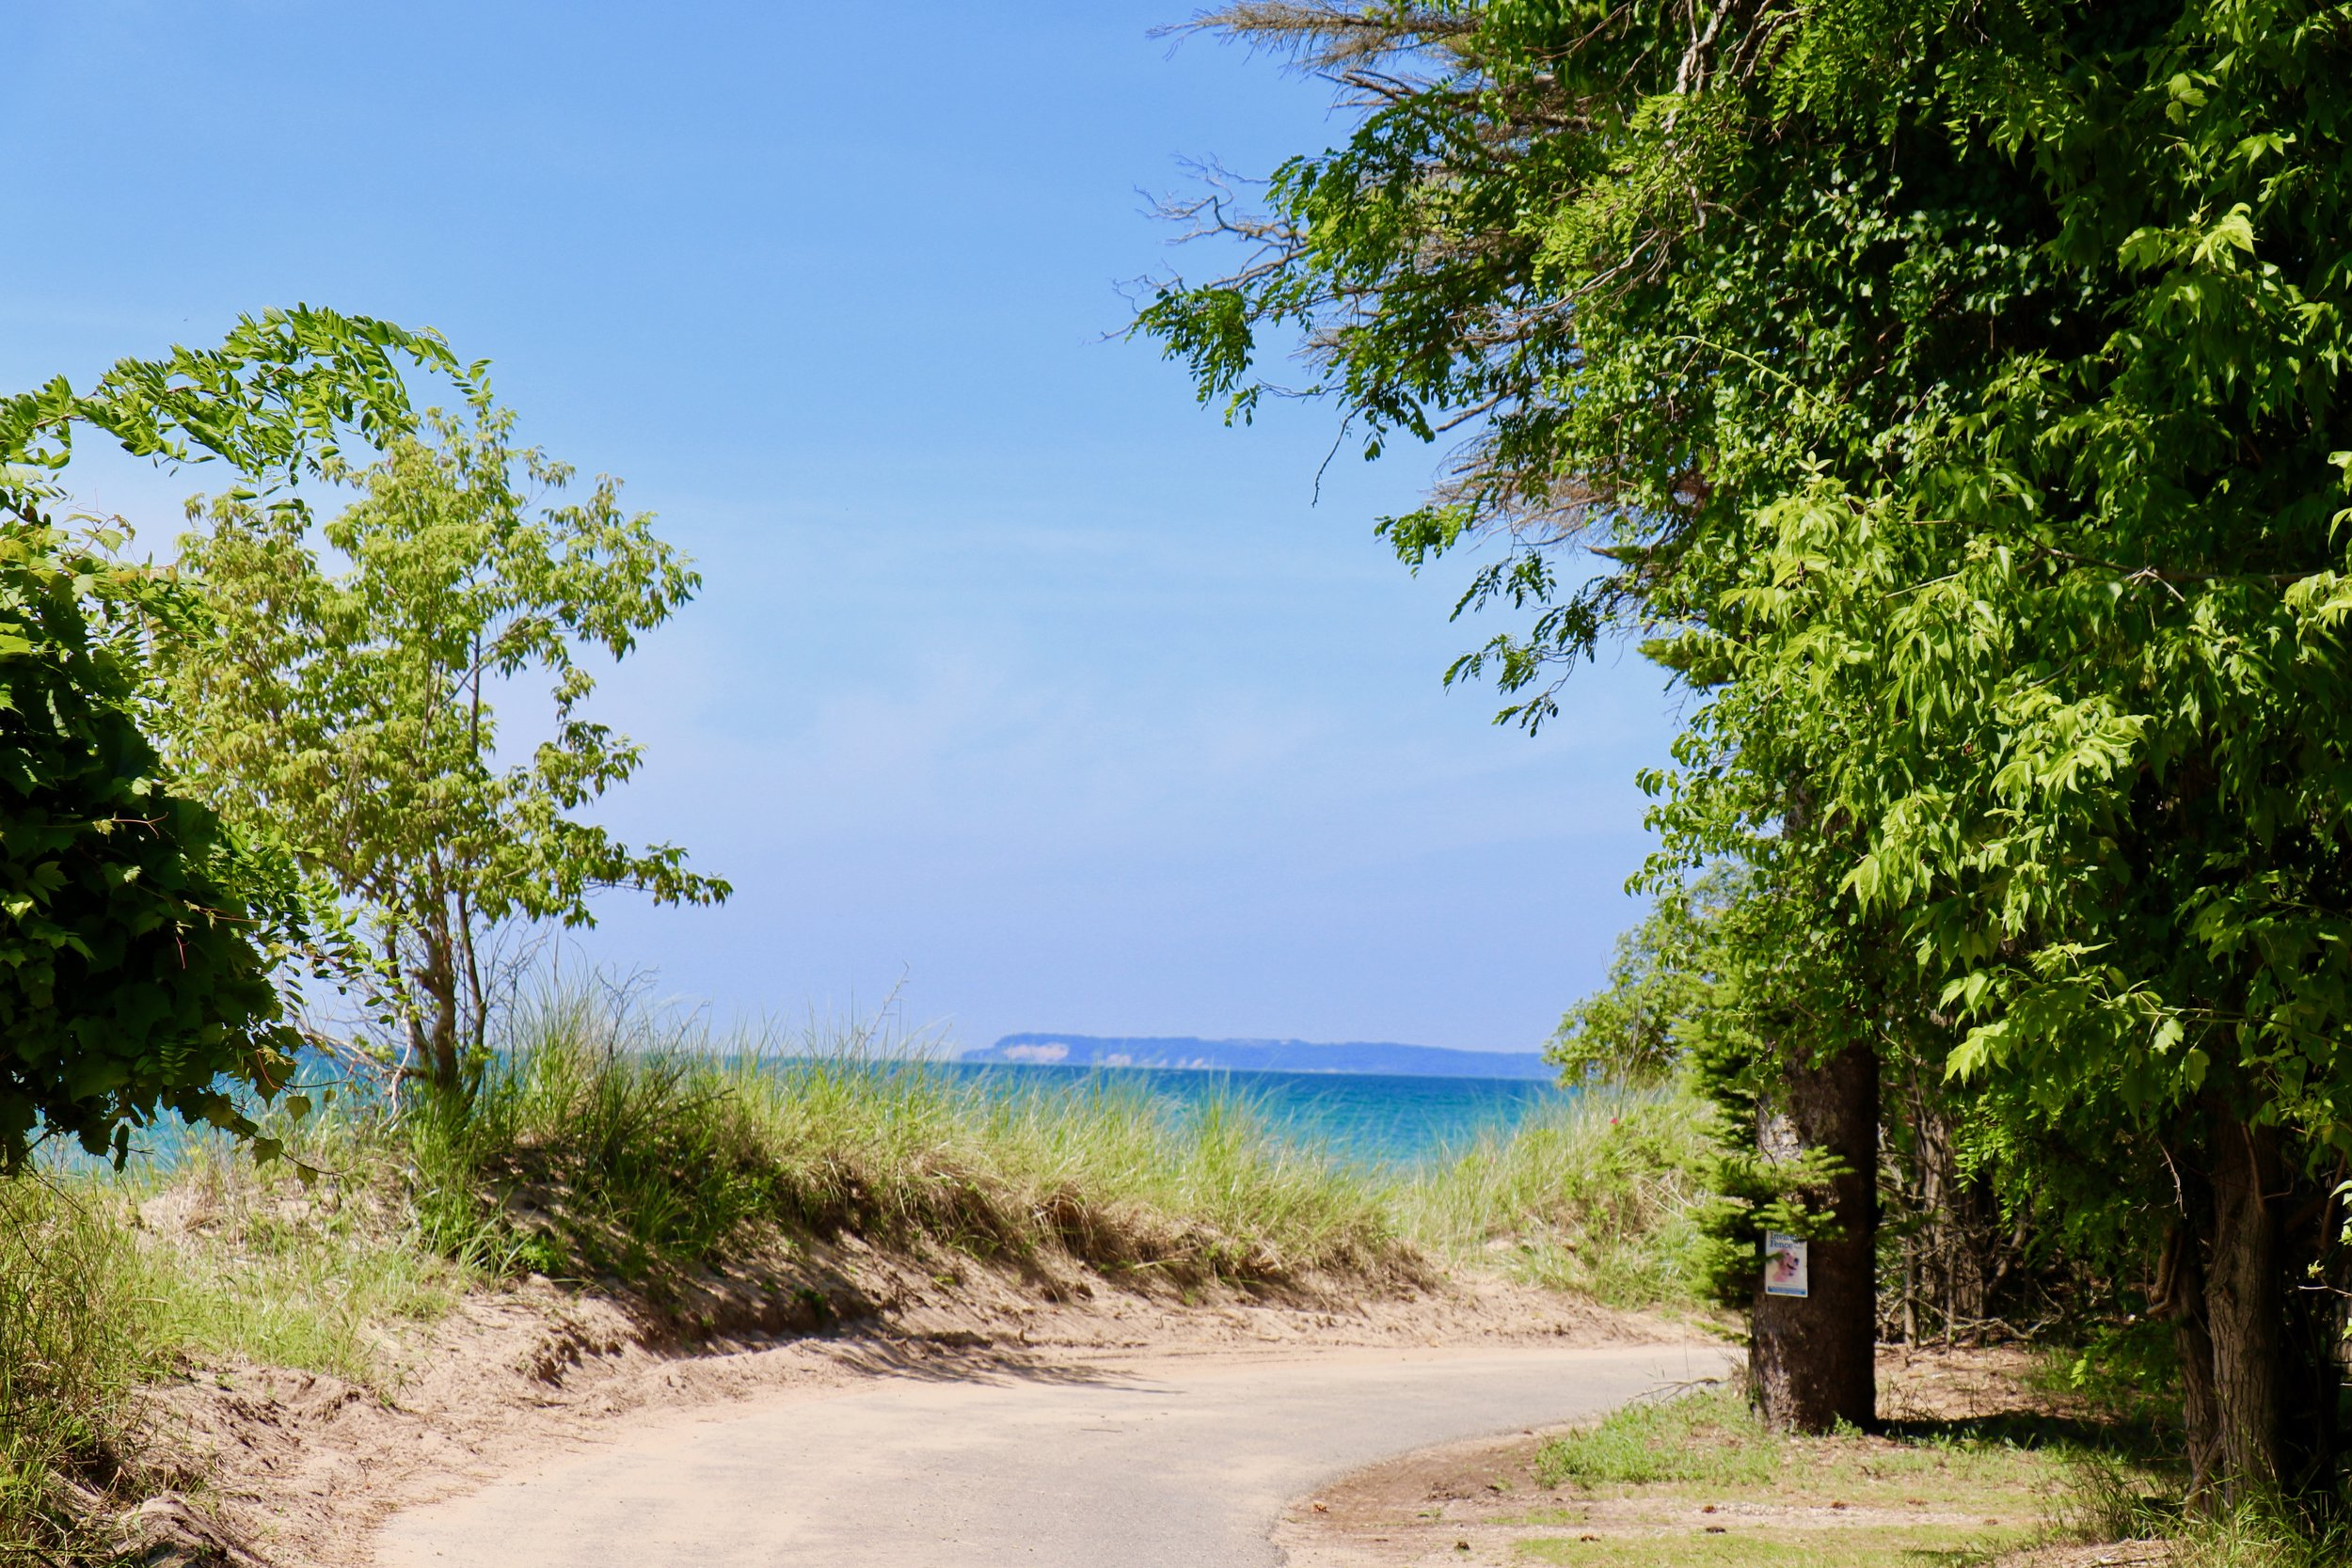 Path home with a beautiful view of Sleeping Bear Dunes.